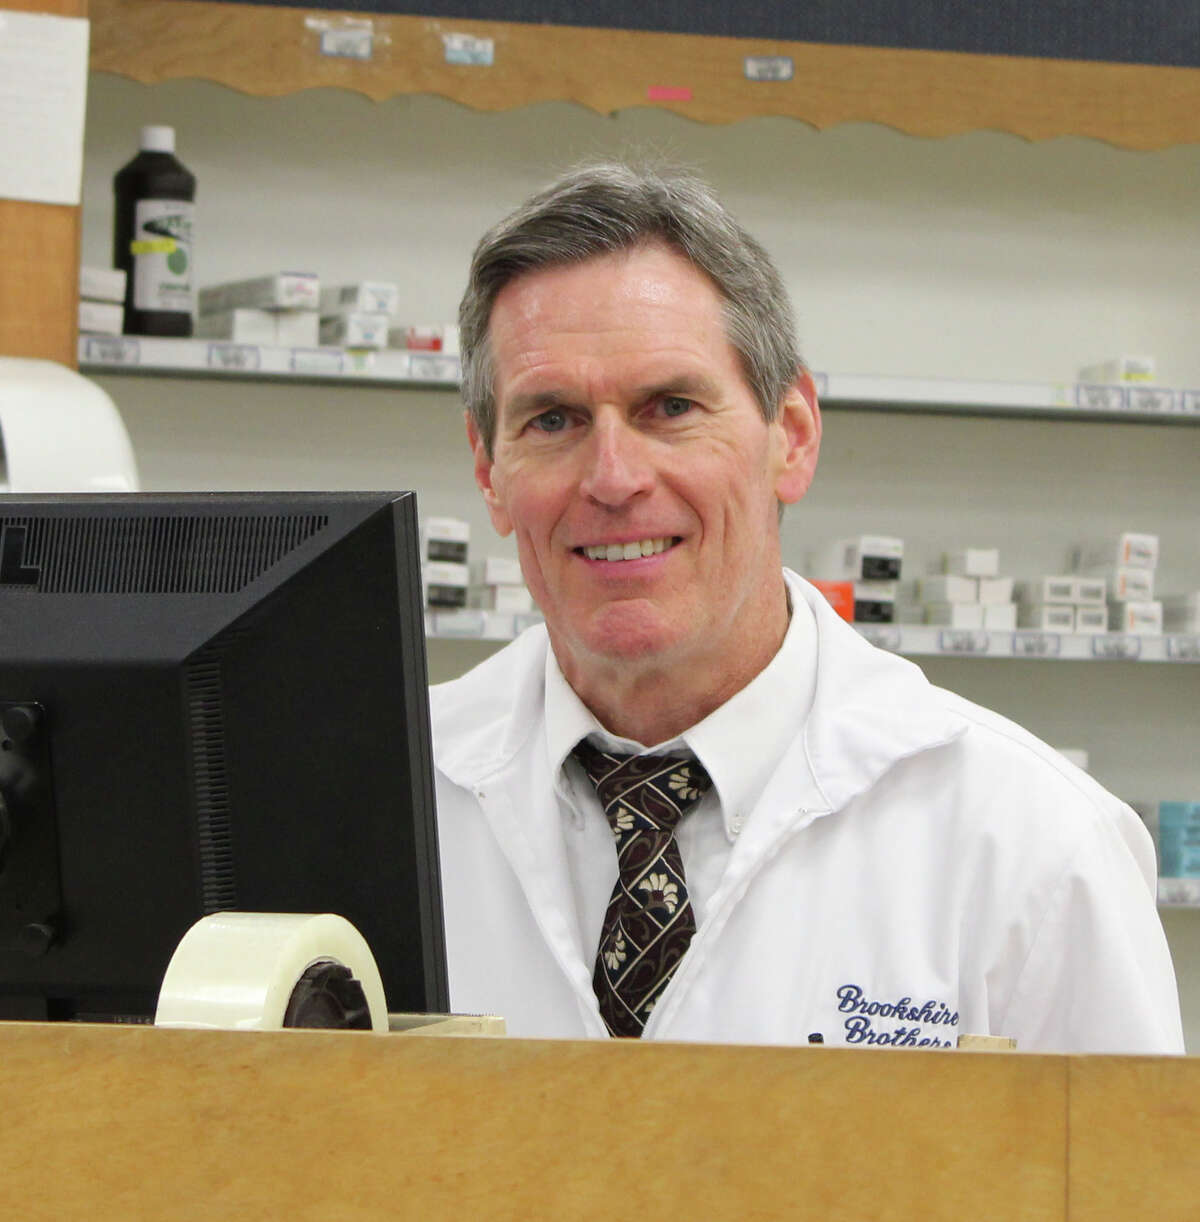 Pharmacist with cancer serves Cleveland residents Pharmacist Brad Smith, living with a chronic form of leukemia, served the citizens in the Cleveland area during the Hurricane Harvey disaster starting on Aug. 28. Smith was the only pharmacist in the city for a few days as those who work in other pharmacies were cut off by the flooding. Read his full story here.